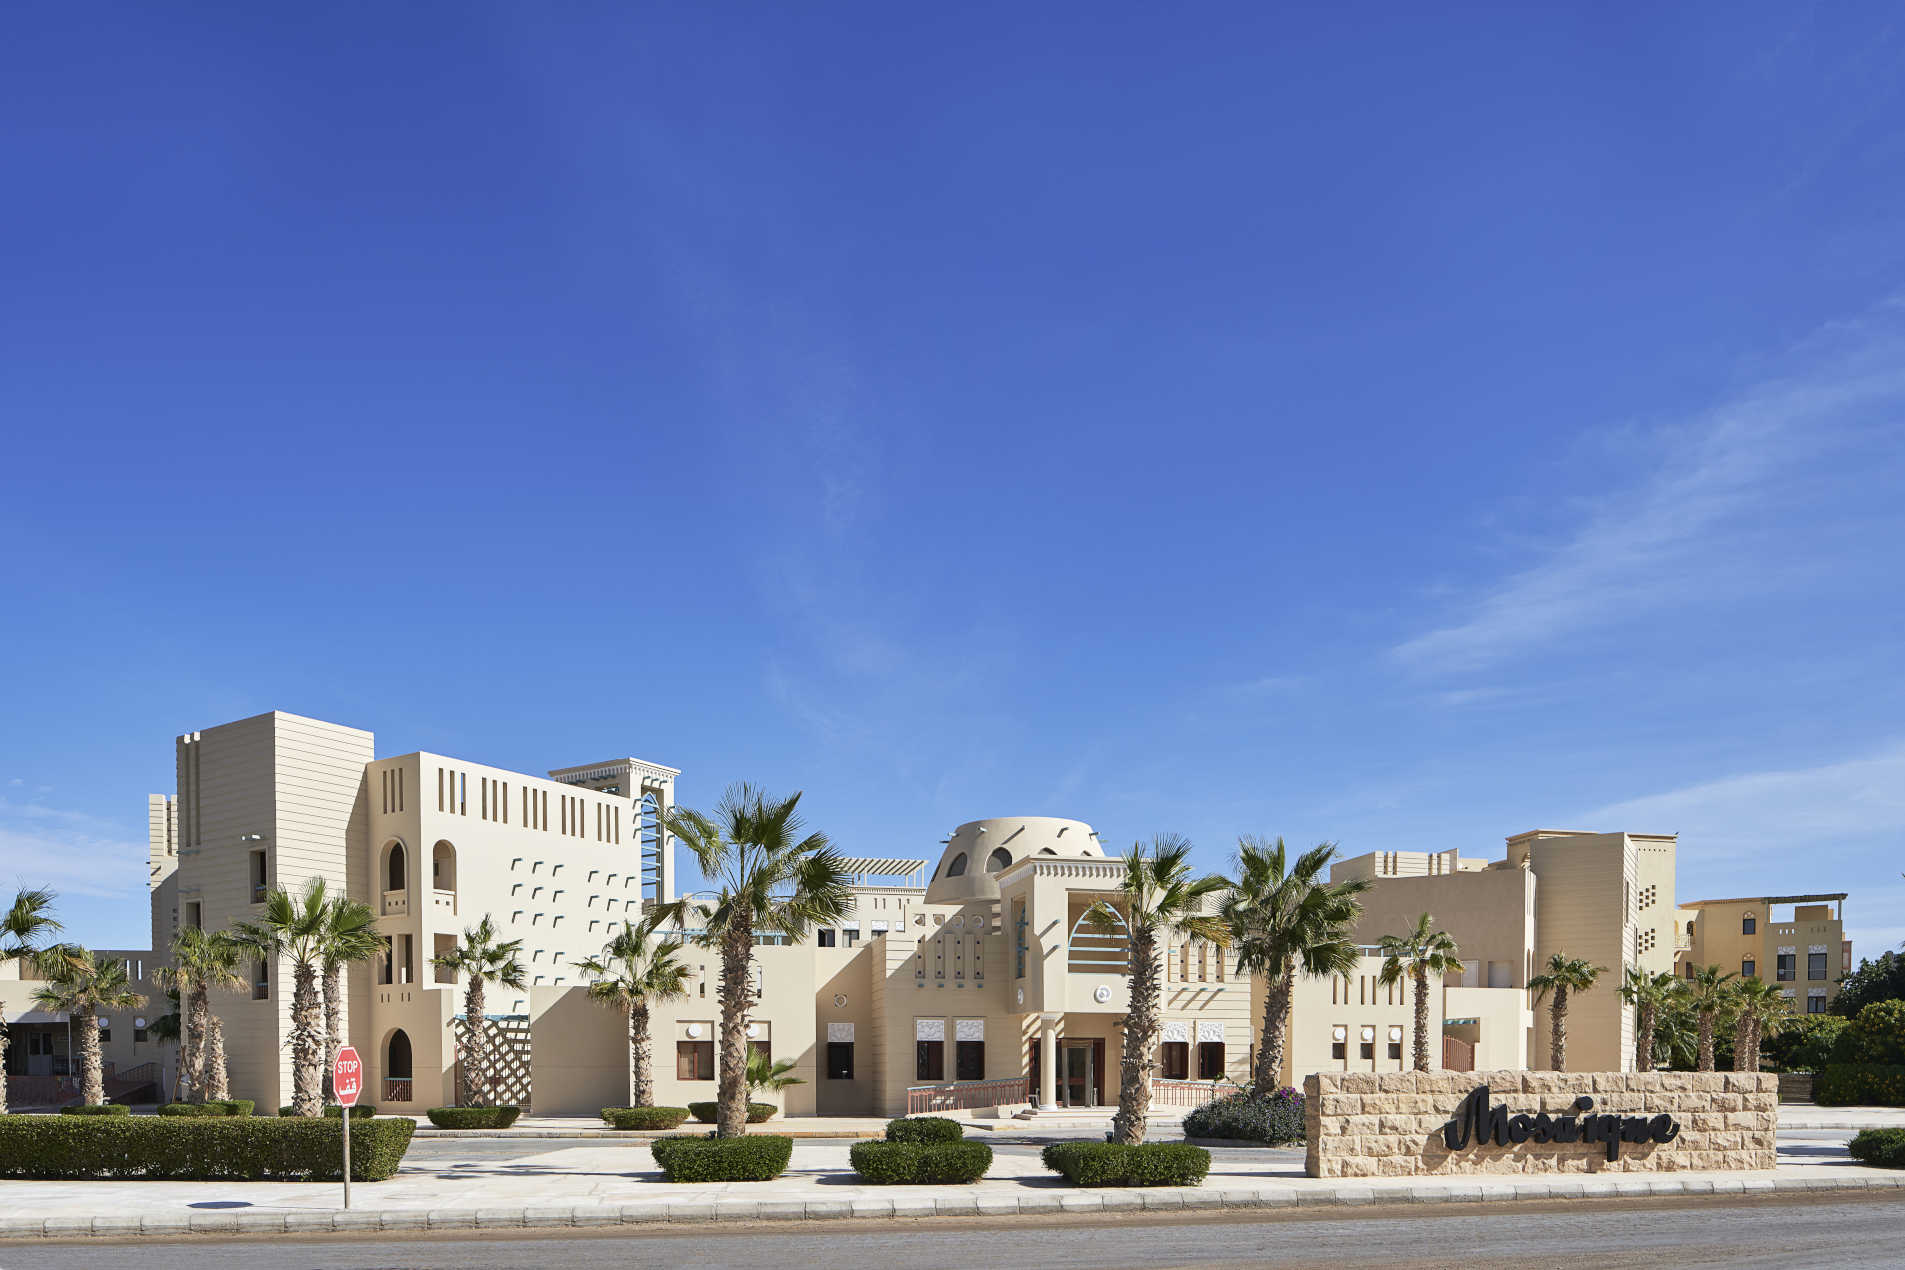 The façade of Mosaique hotel in El Gouna with arabesque moroccan design